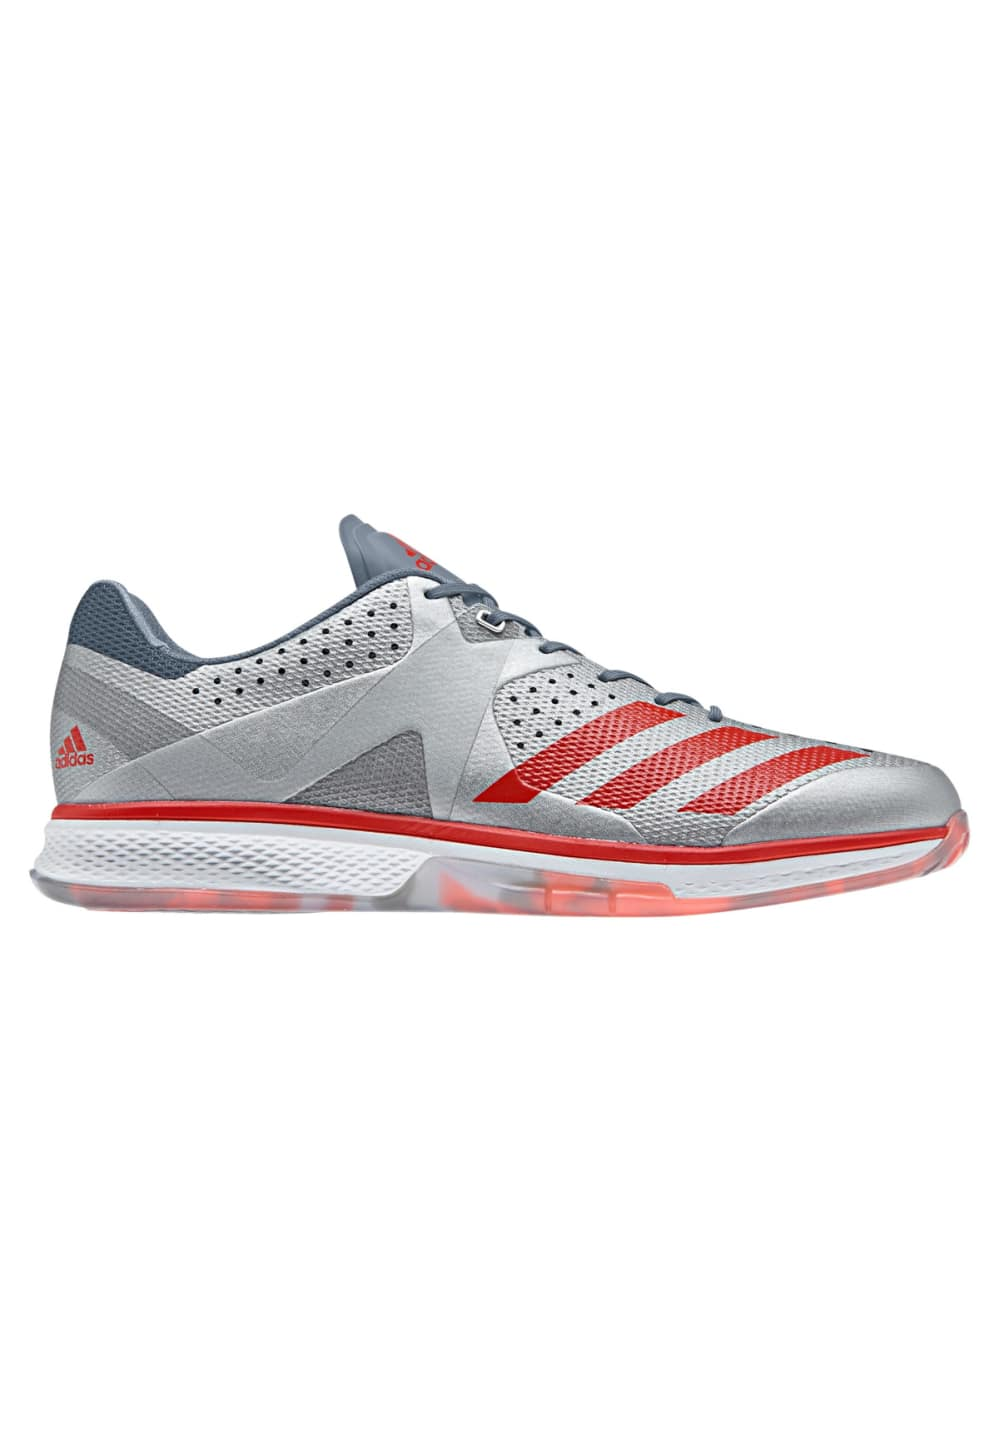 Homme Counterblast Handball Adidas Chaussures Pour Argent PkwX80On